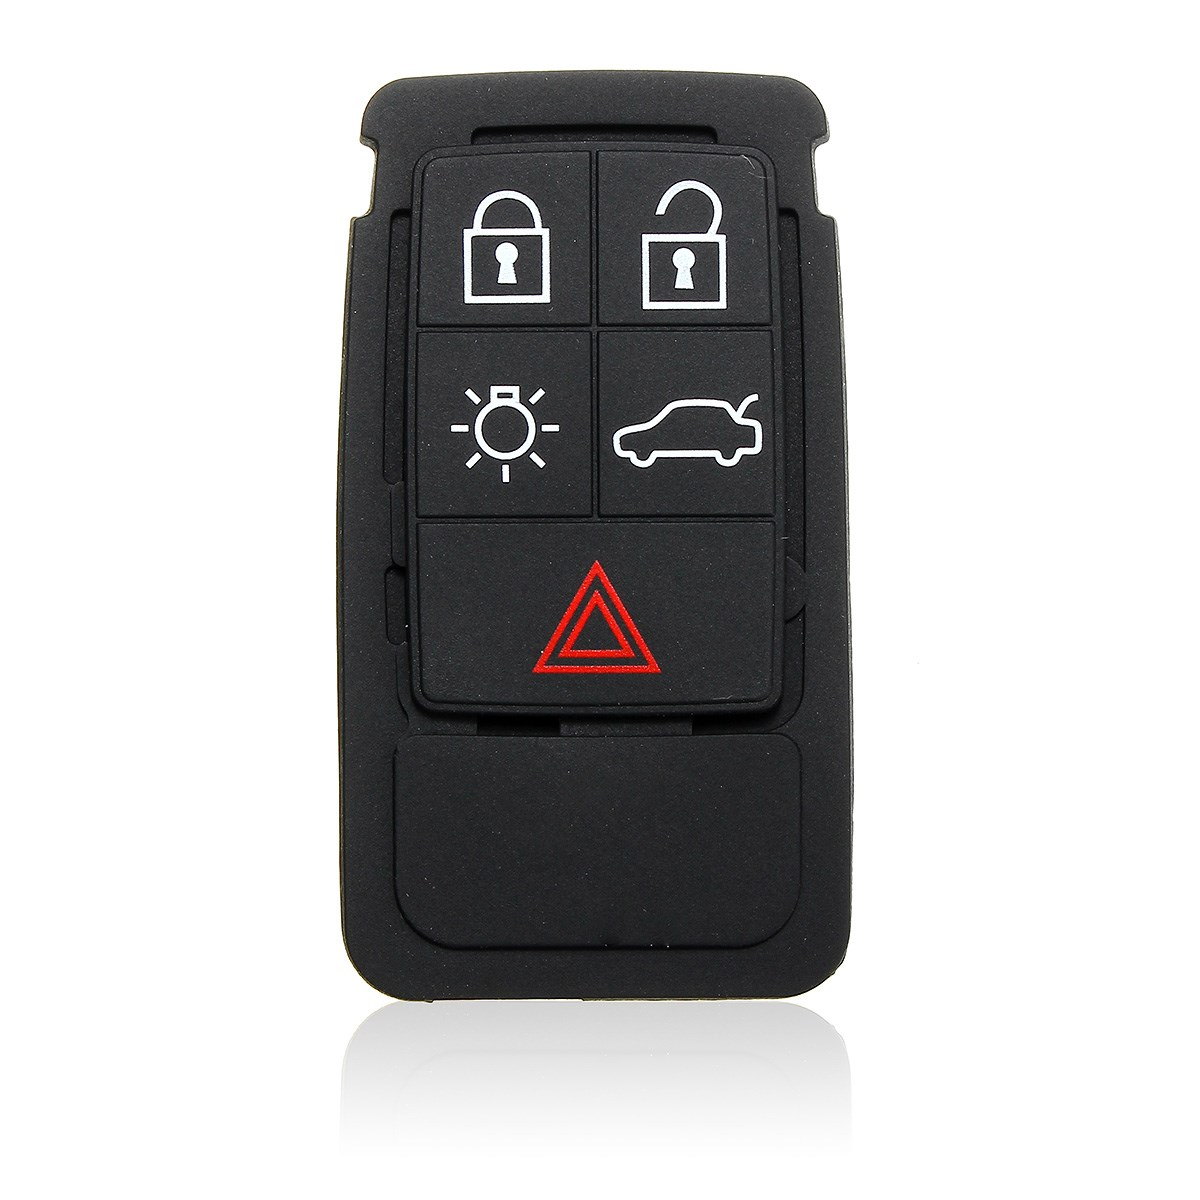 Floor mats volvo xc70 - 5 Buttons Remote Key Rubber Pad Replacement Fob Fit For Volvo S60 S80 Xc70 Xc90 Black